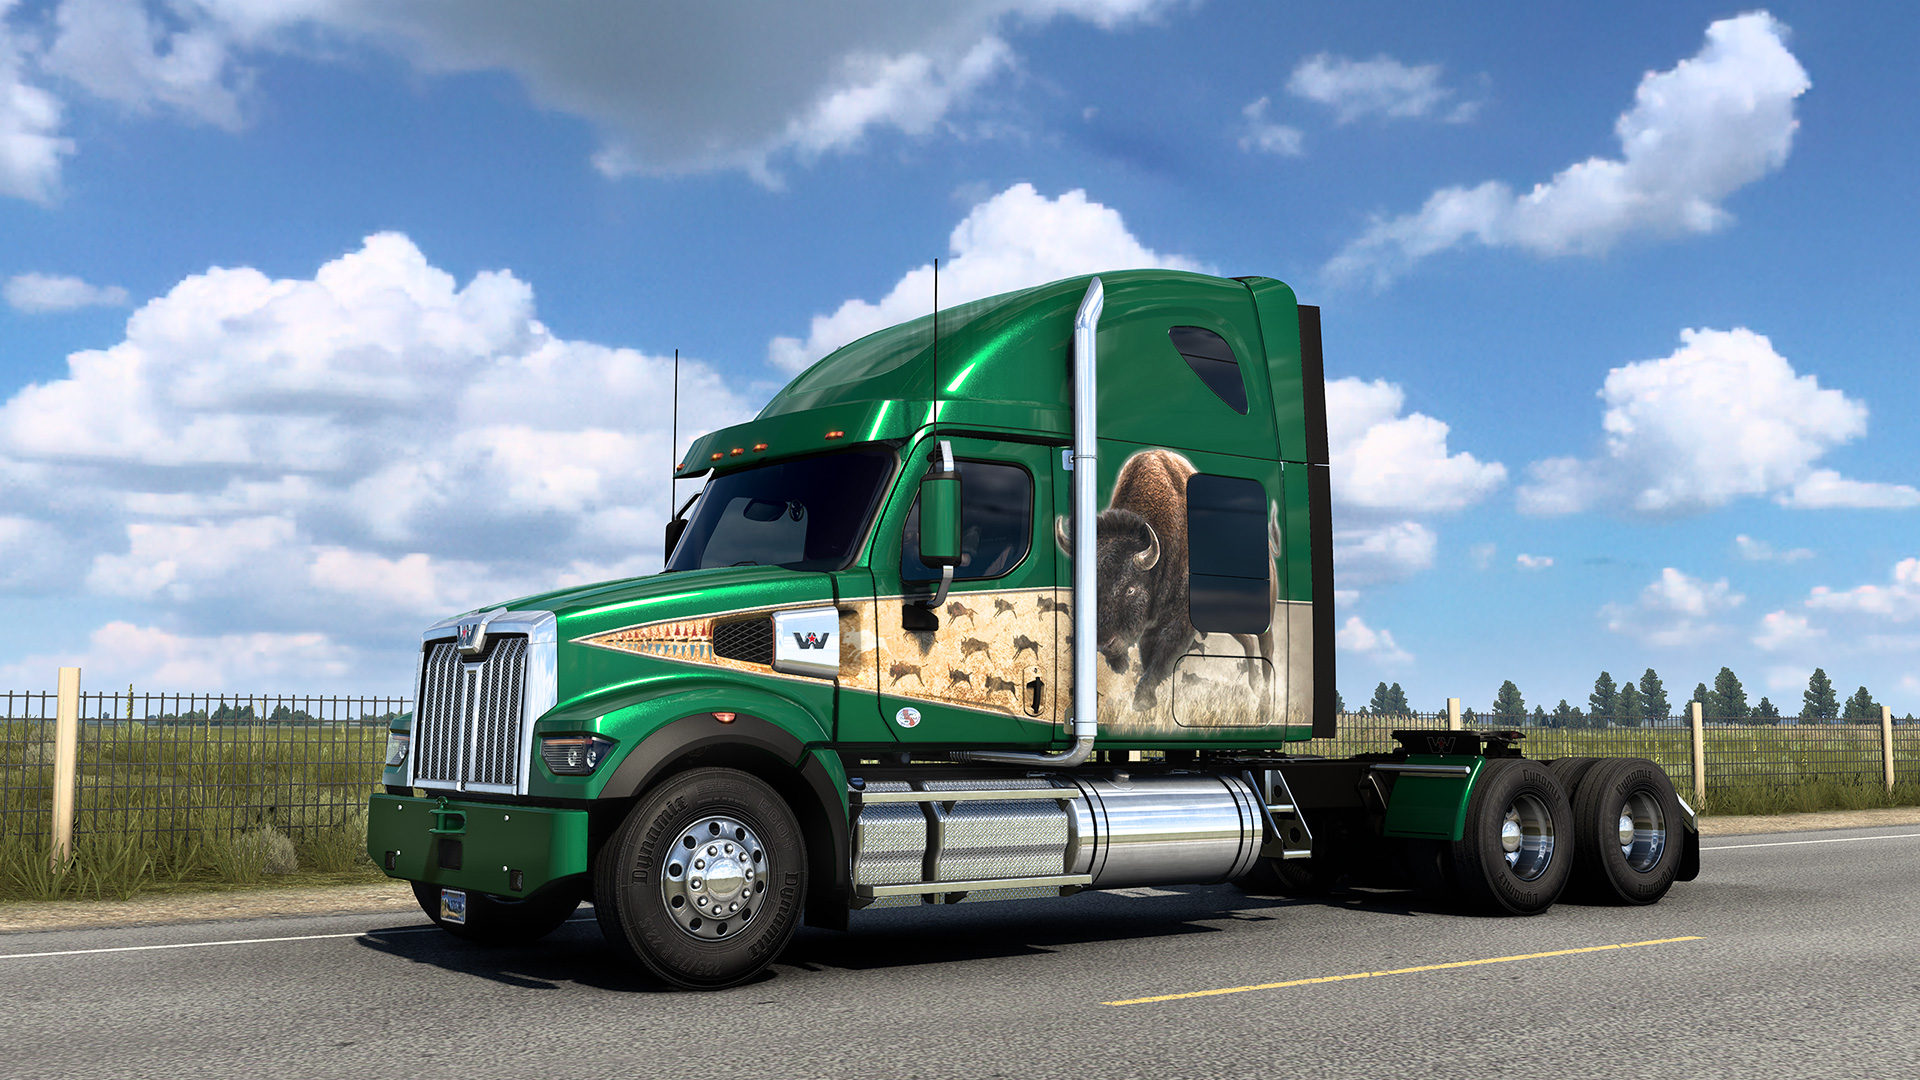 Get a bison truck for playing American Truck Simulator's Wyoming DLC at launch